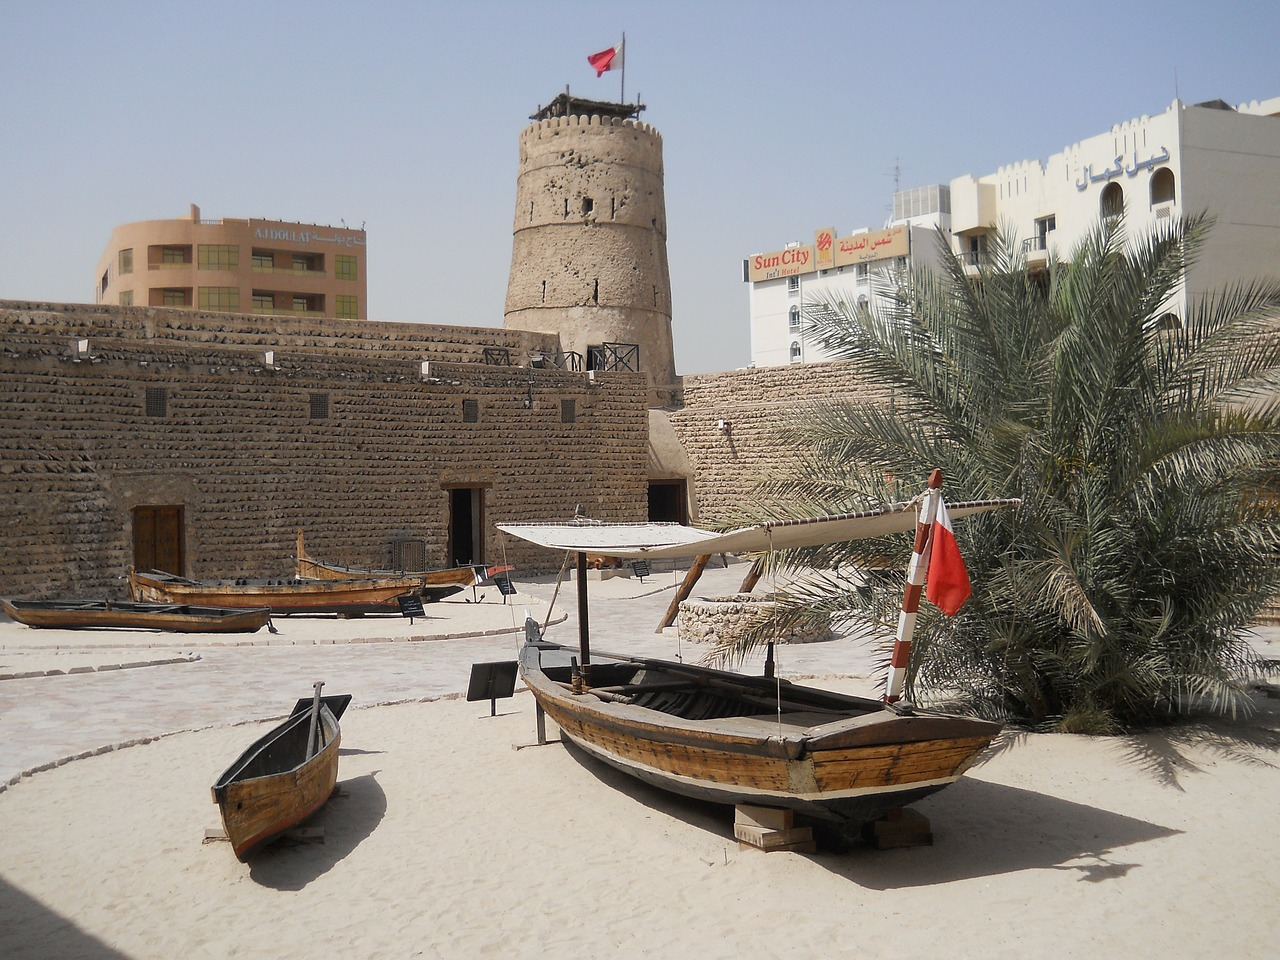 Dubai Museum - Top 5 tourist attractions in Dubai